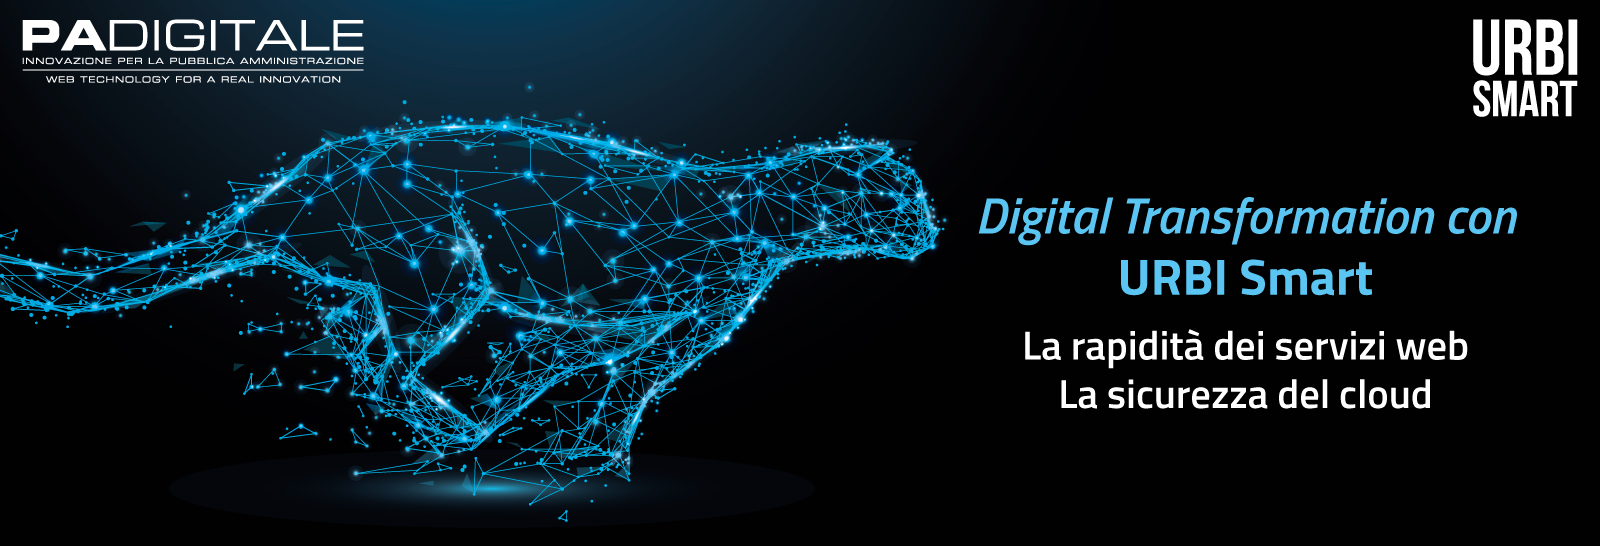 Verso la Digital Transformation con PA Digitale S.p.A.